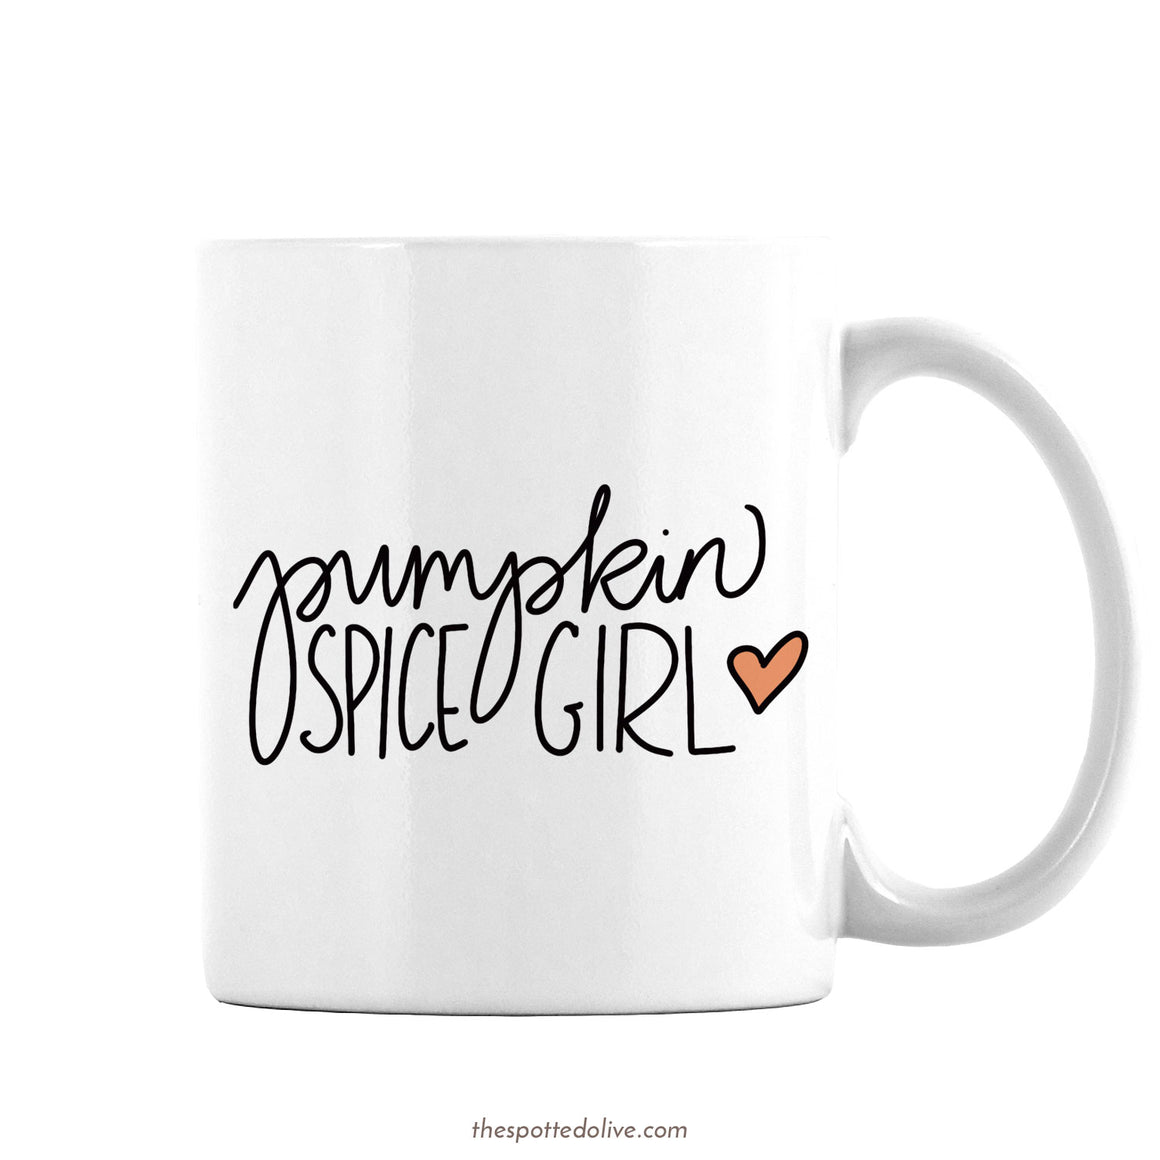 Pumpkin Spice Girl Coffee Mug by The Spotted Olive - Right